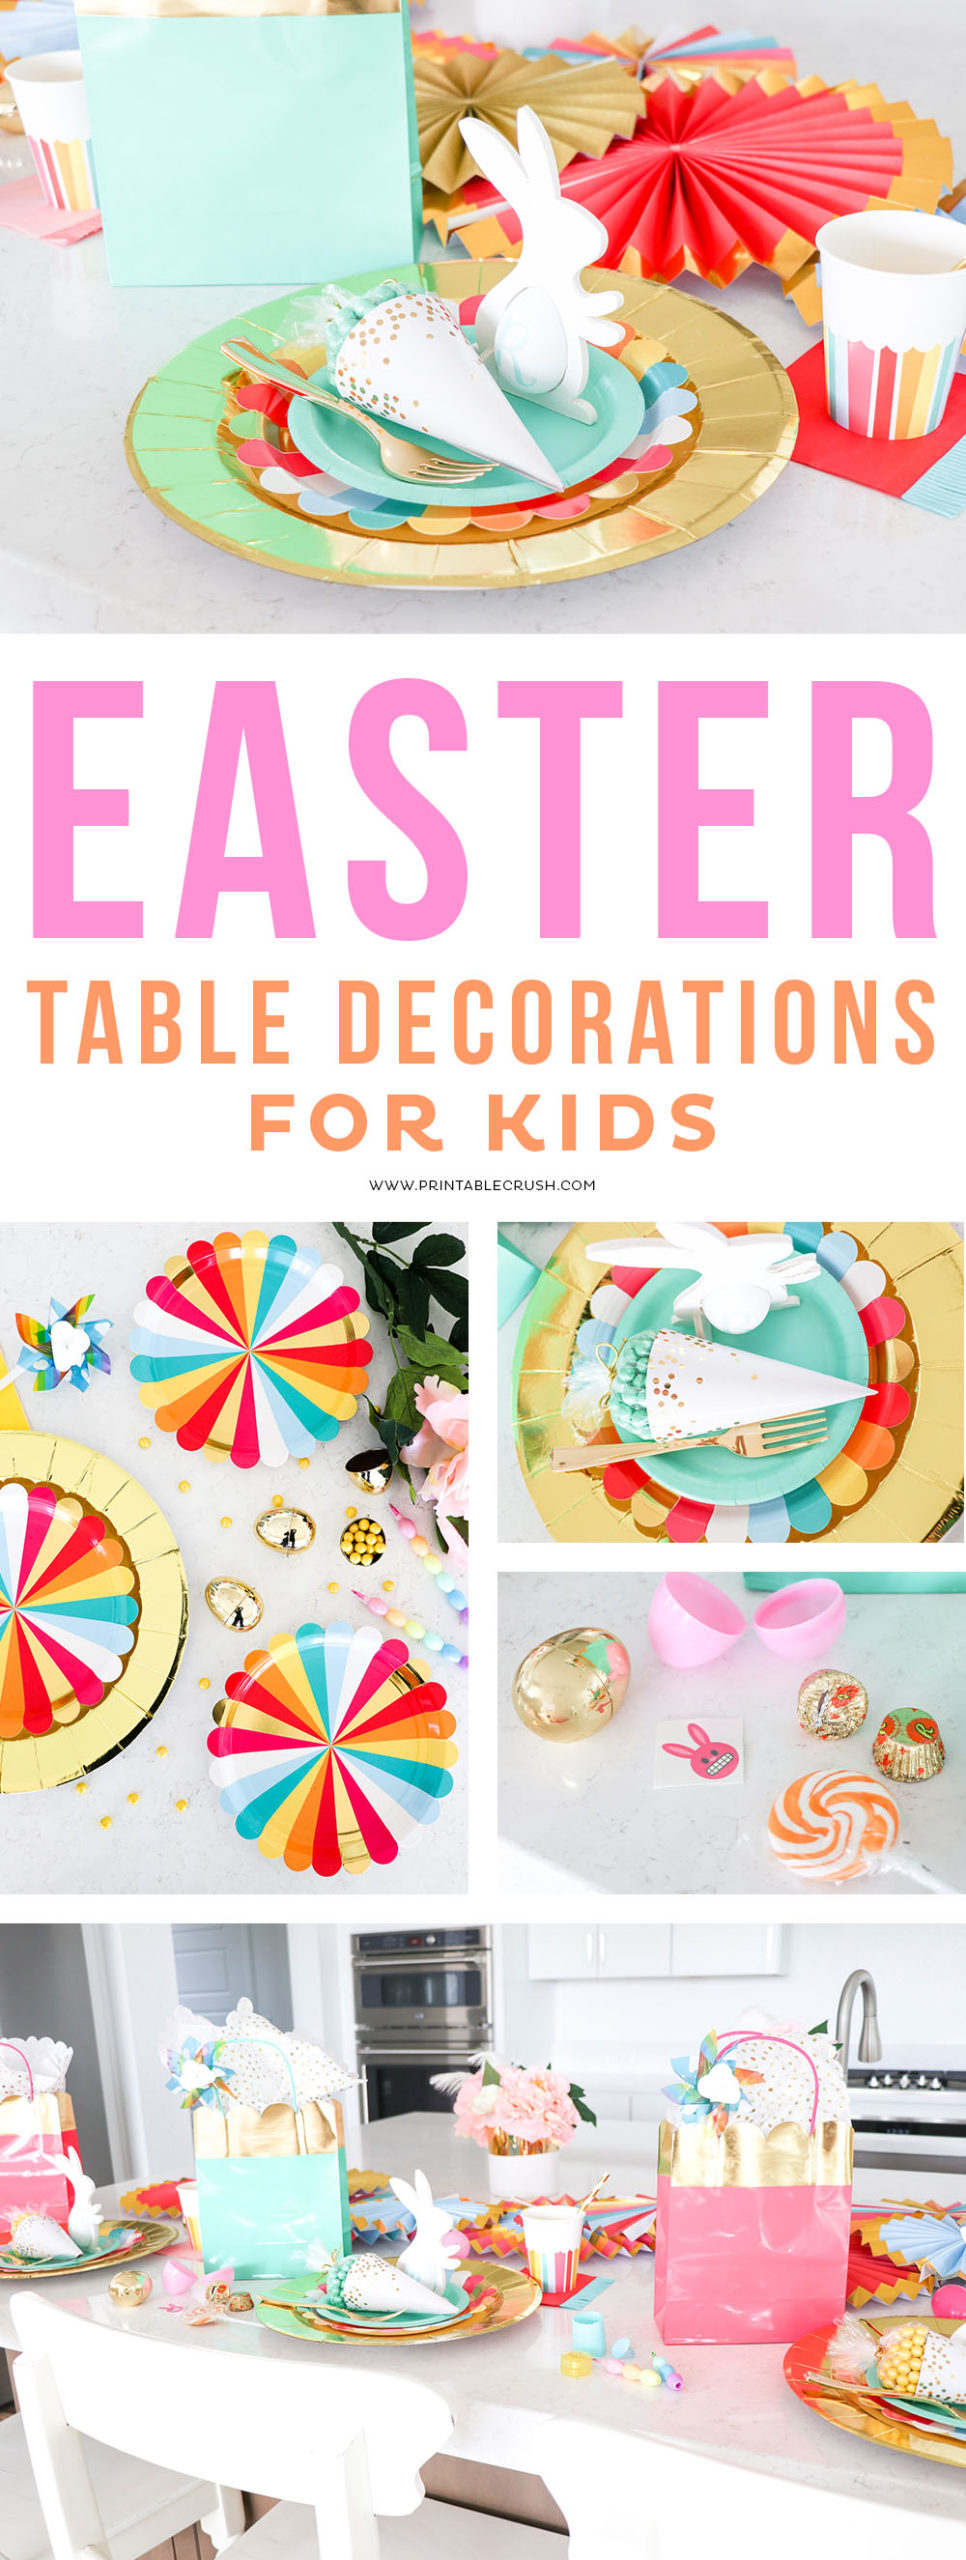 Easy Easter Table Decorations for Kids